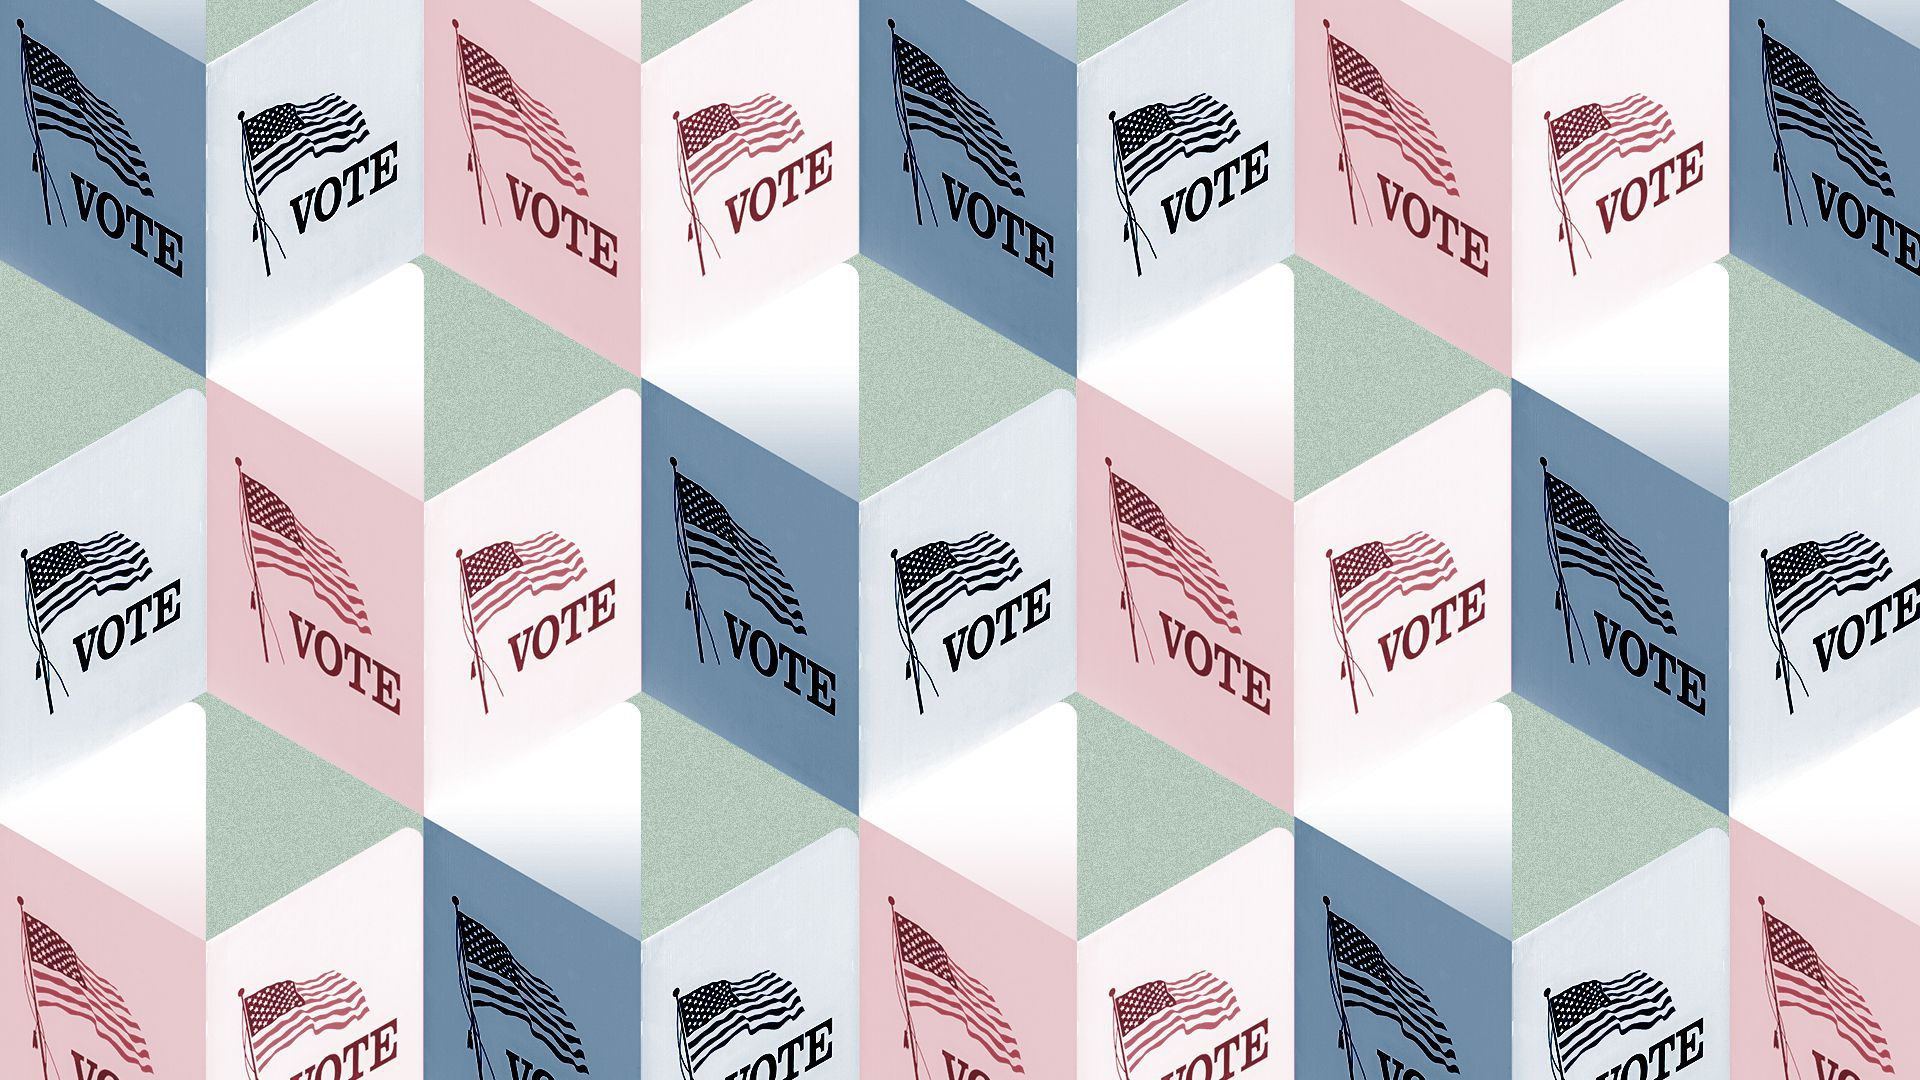 Illustration of a pattern of voting booths.